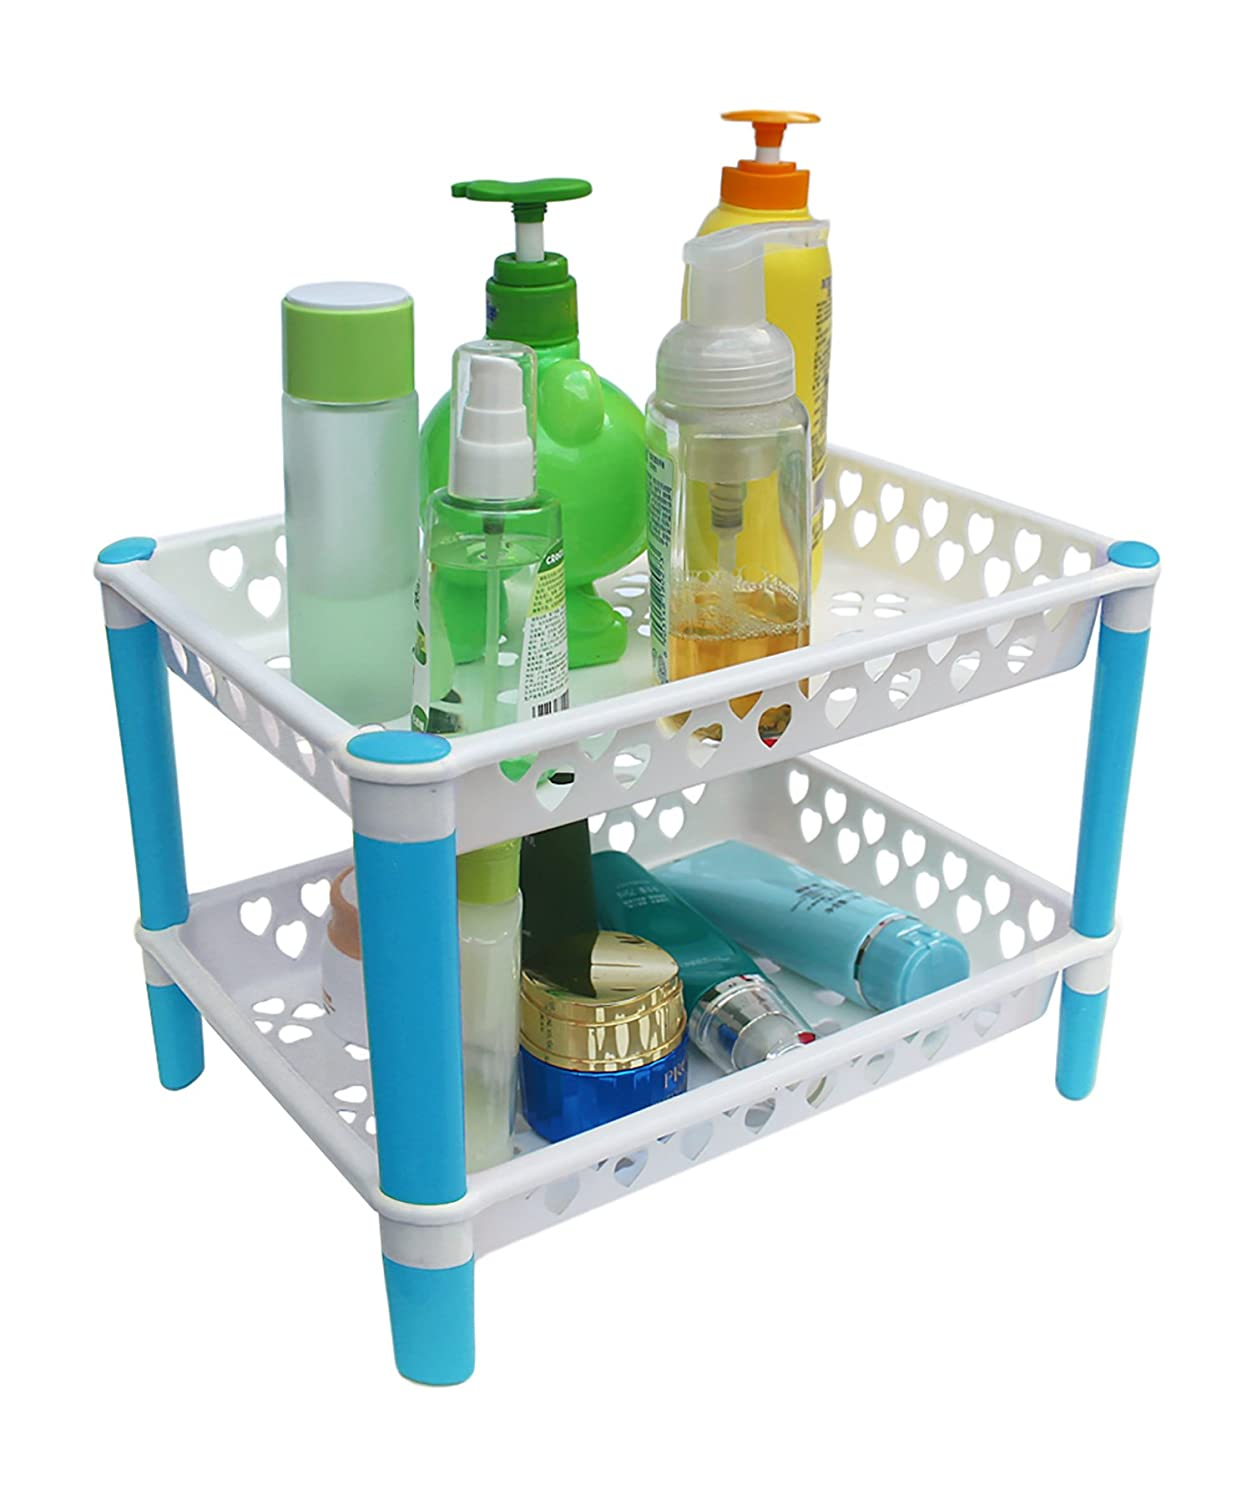 Honla 2-Tiered Plastic Bathroom Shelves Organizer with Perforated Baskets-Small Shelving Units/Drying Rack for Organization, Free Standing, Blue and White